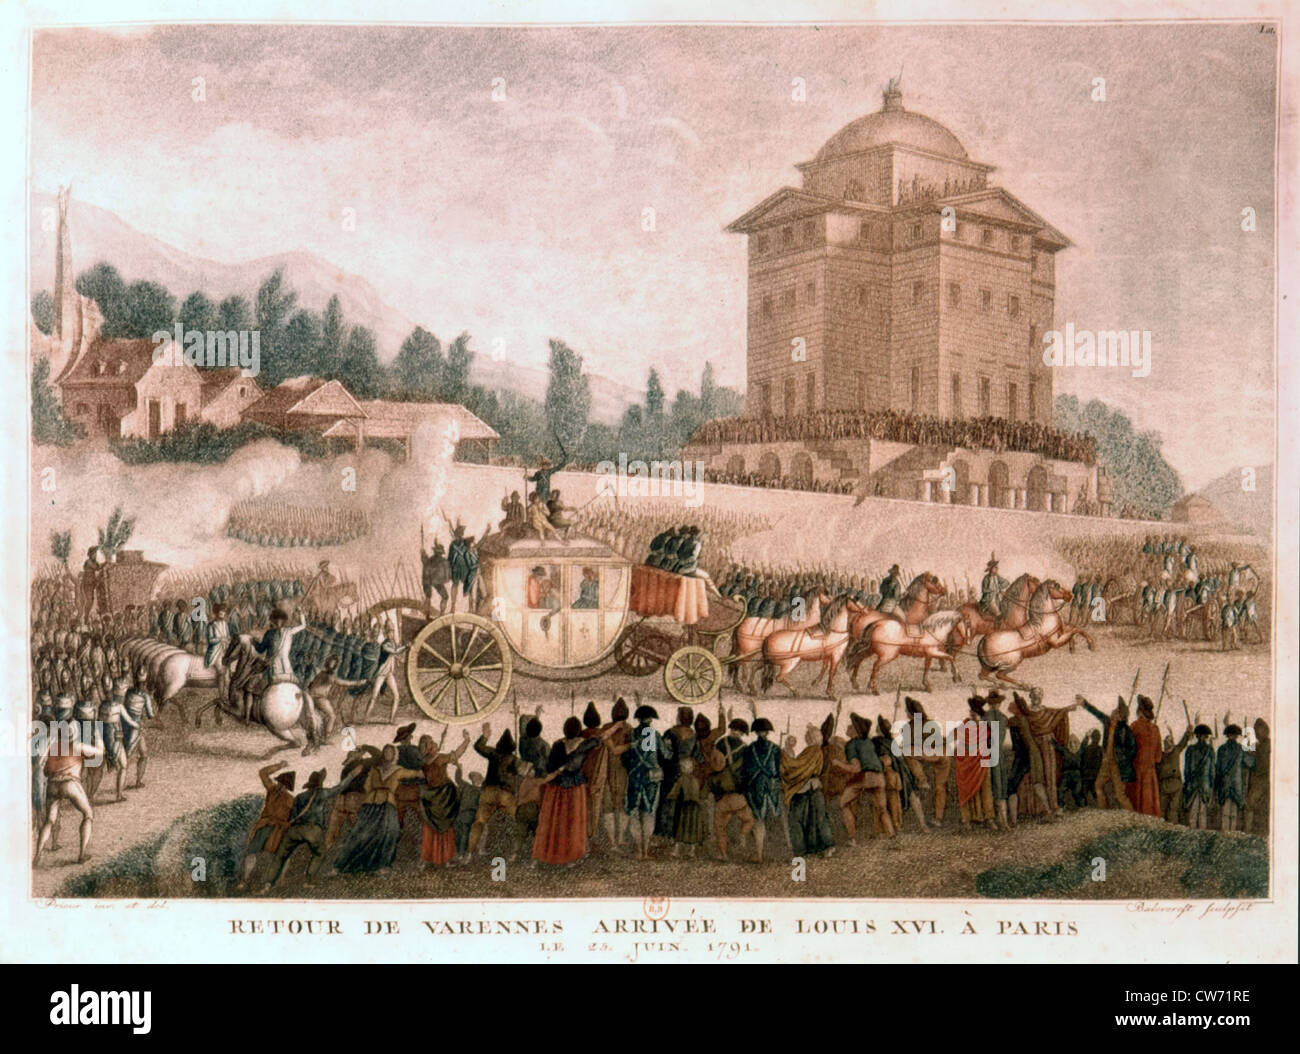 The return from Varennes (June 23, 1791) - Stock Image